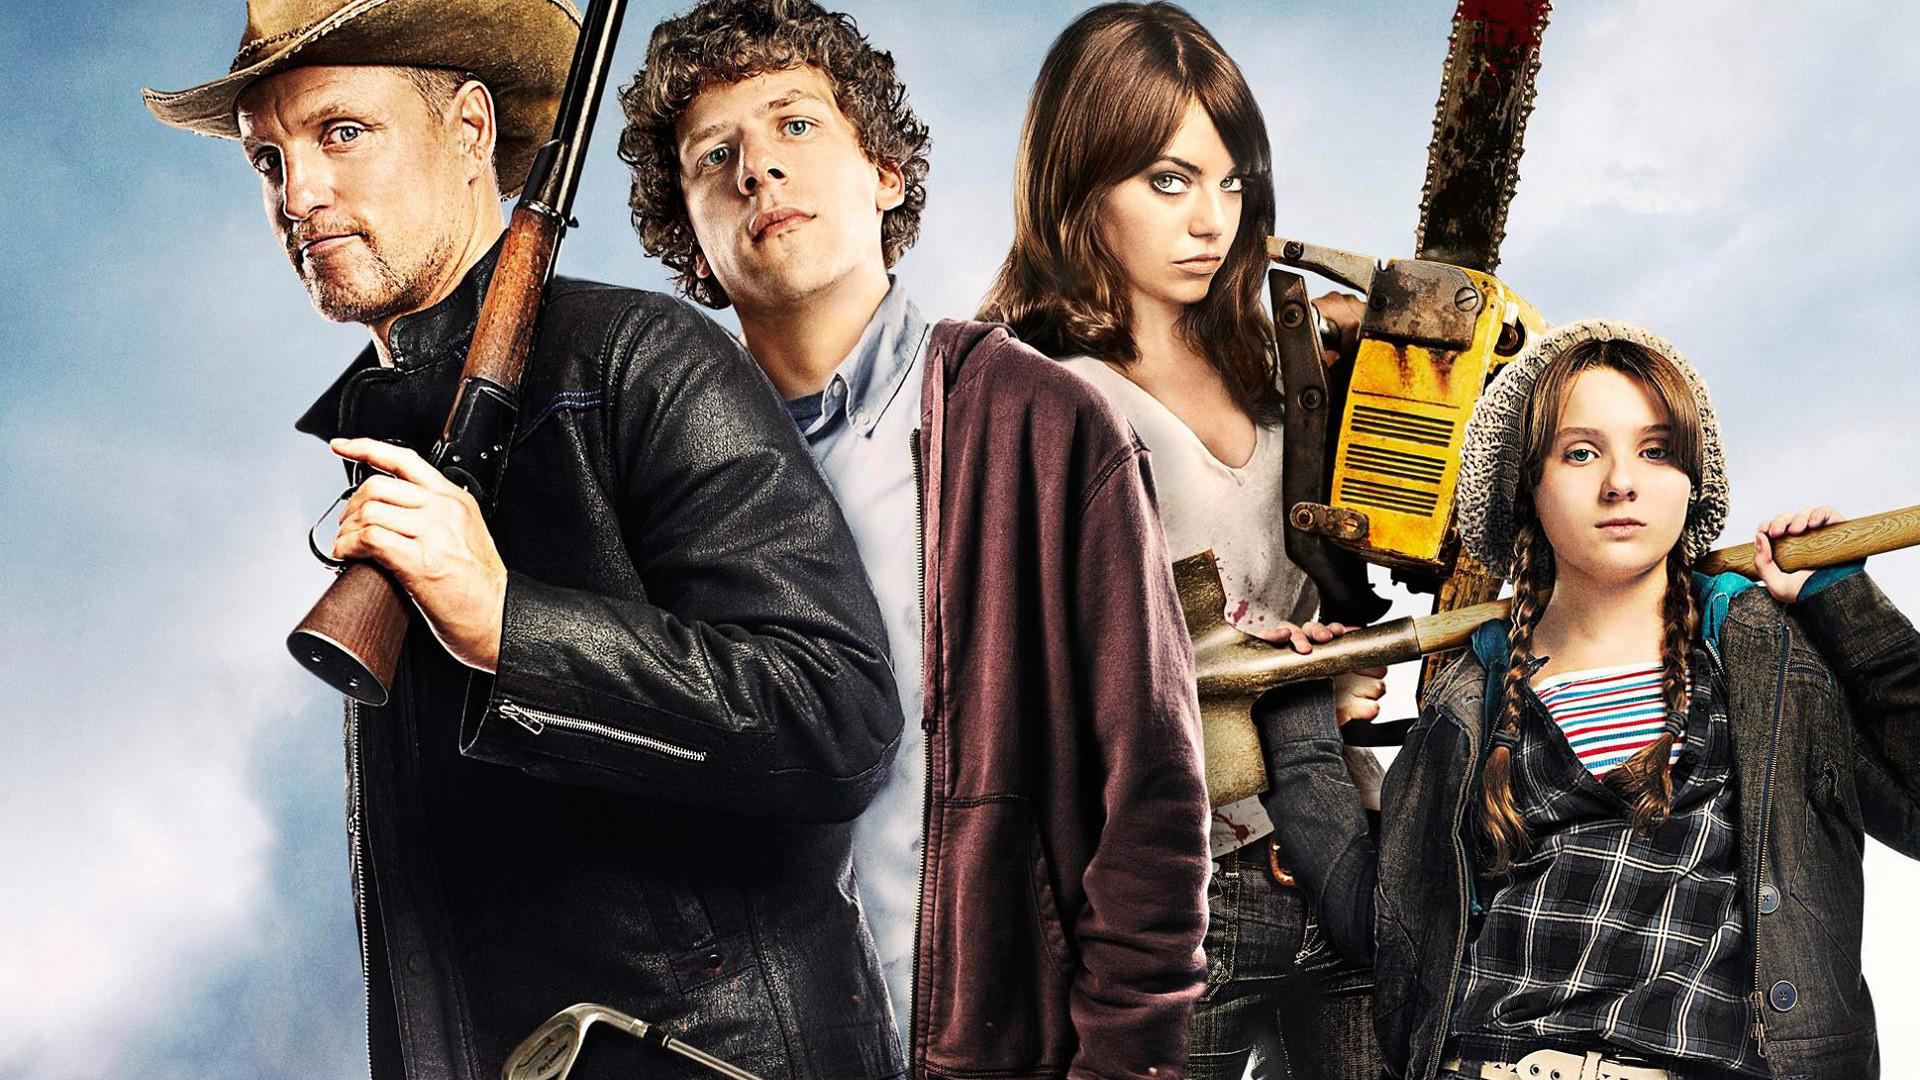 All Comedy Movies In 2009 zombieland 2' is official with director ruben fleischer and